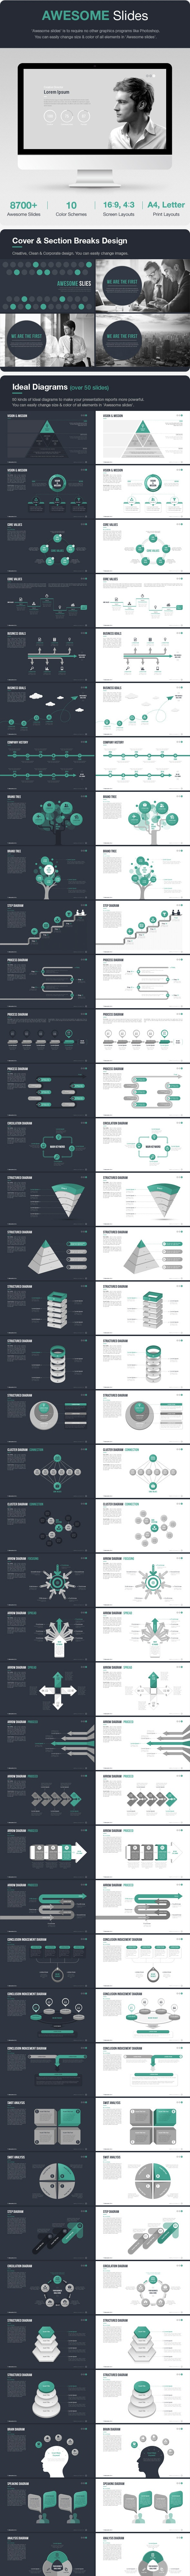 Awesome Slides - Business PowerPoint Templates